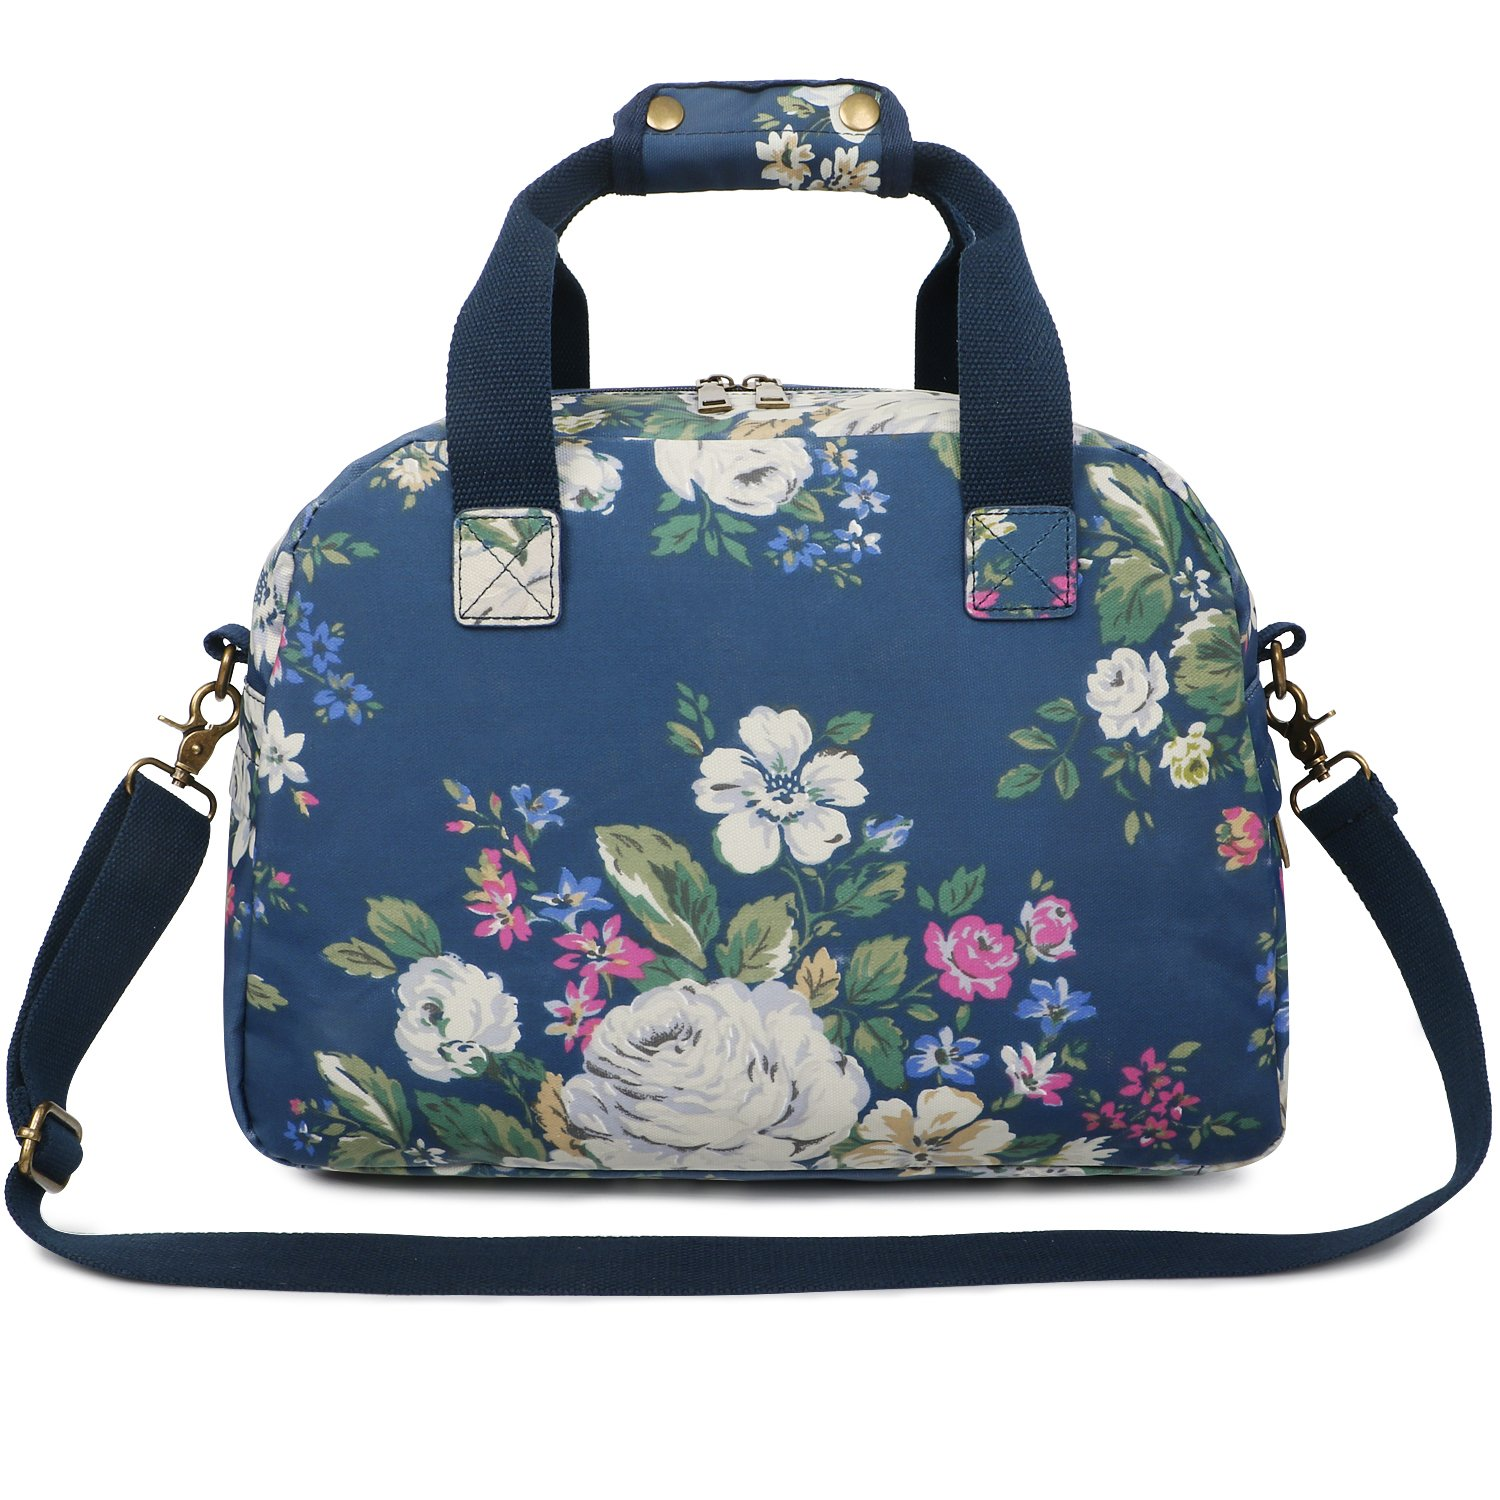 Oflamn 16L Small Floral Gym Duffle Bag Waterproof Canvas Travel Cute Sports Carry On for Women